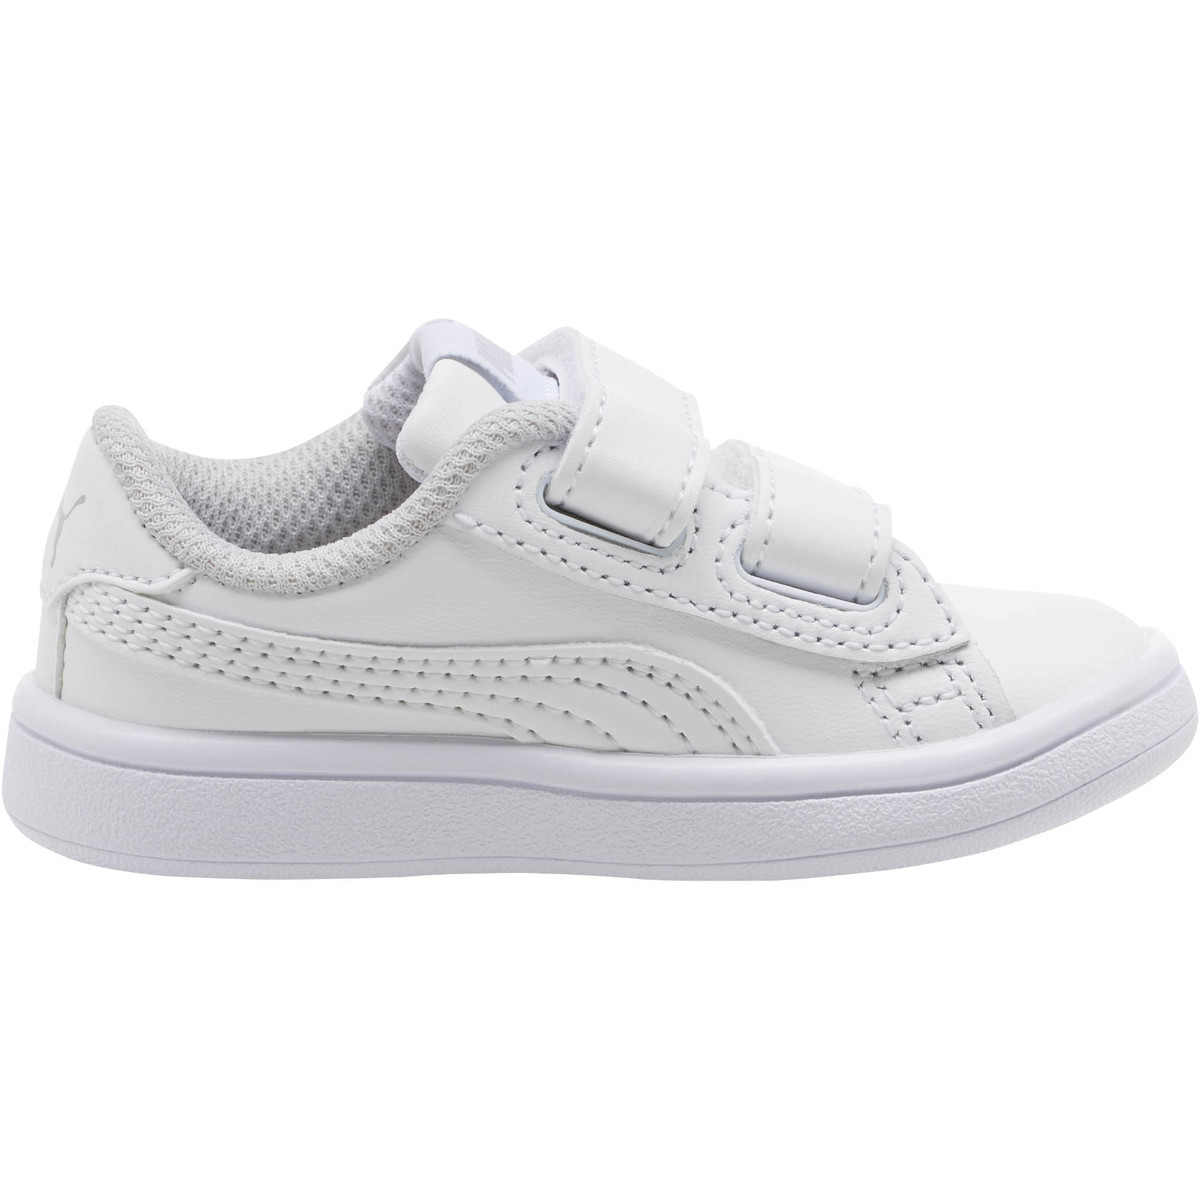 Puma Toddler Boys' Smash V2 Lv Sneakers - White, 6